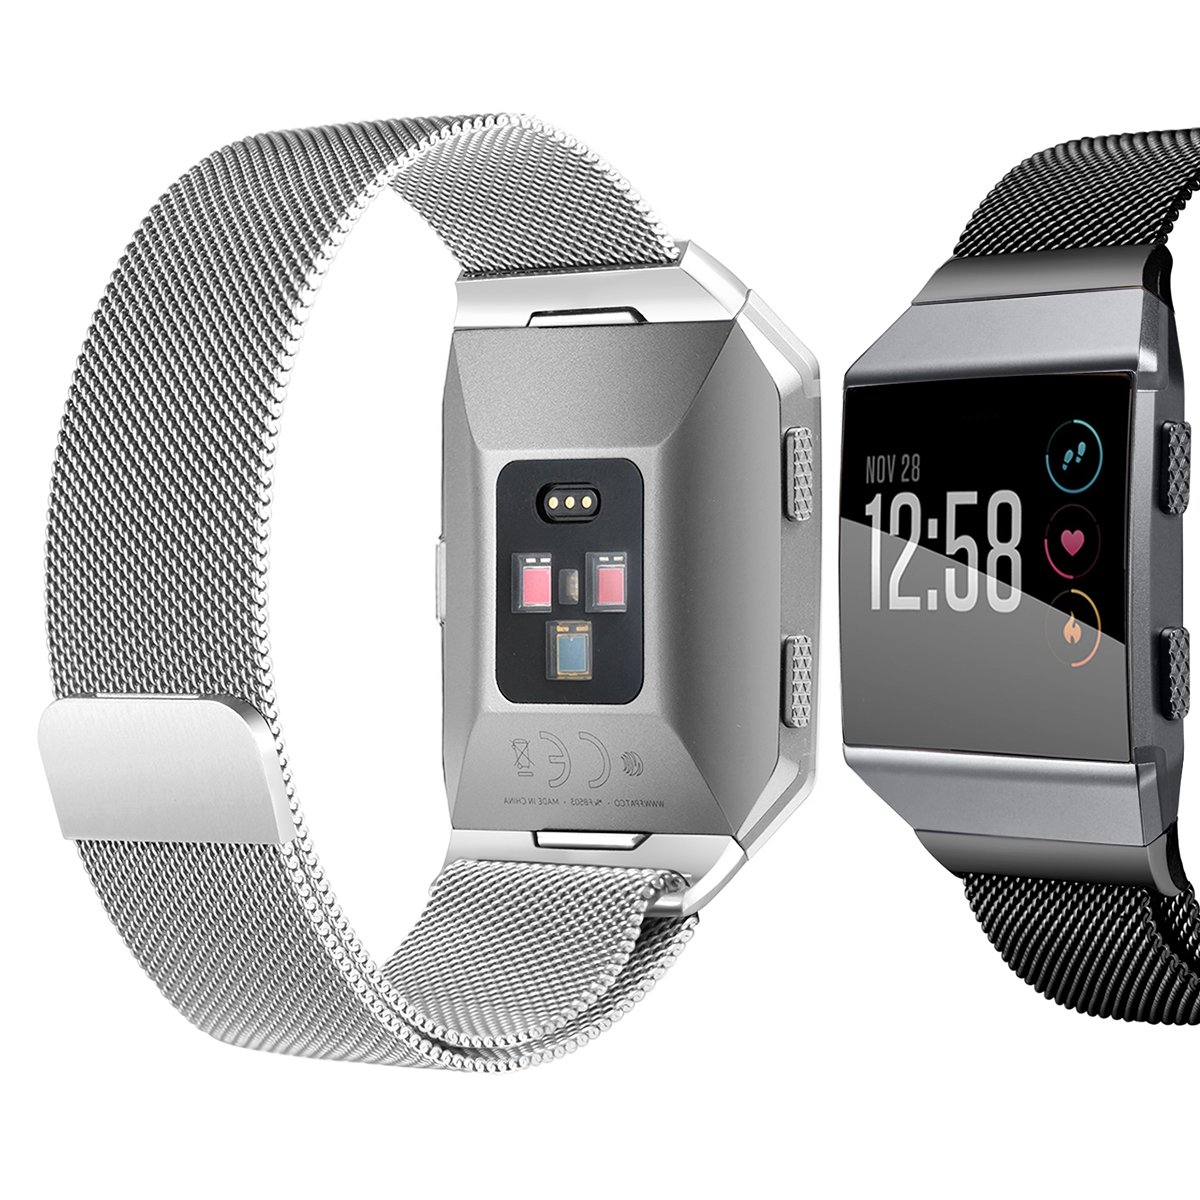 bayite For Fitbit Ionic Bands, Stainless Steel Milanese Loop Metal Replacement Strap with Unique Magnet Lock Accessories for Fitbit Ionic Small Silver + Black by bayite (Image #2)